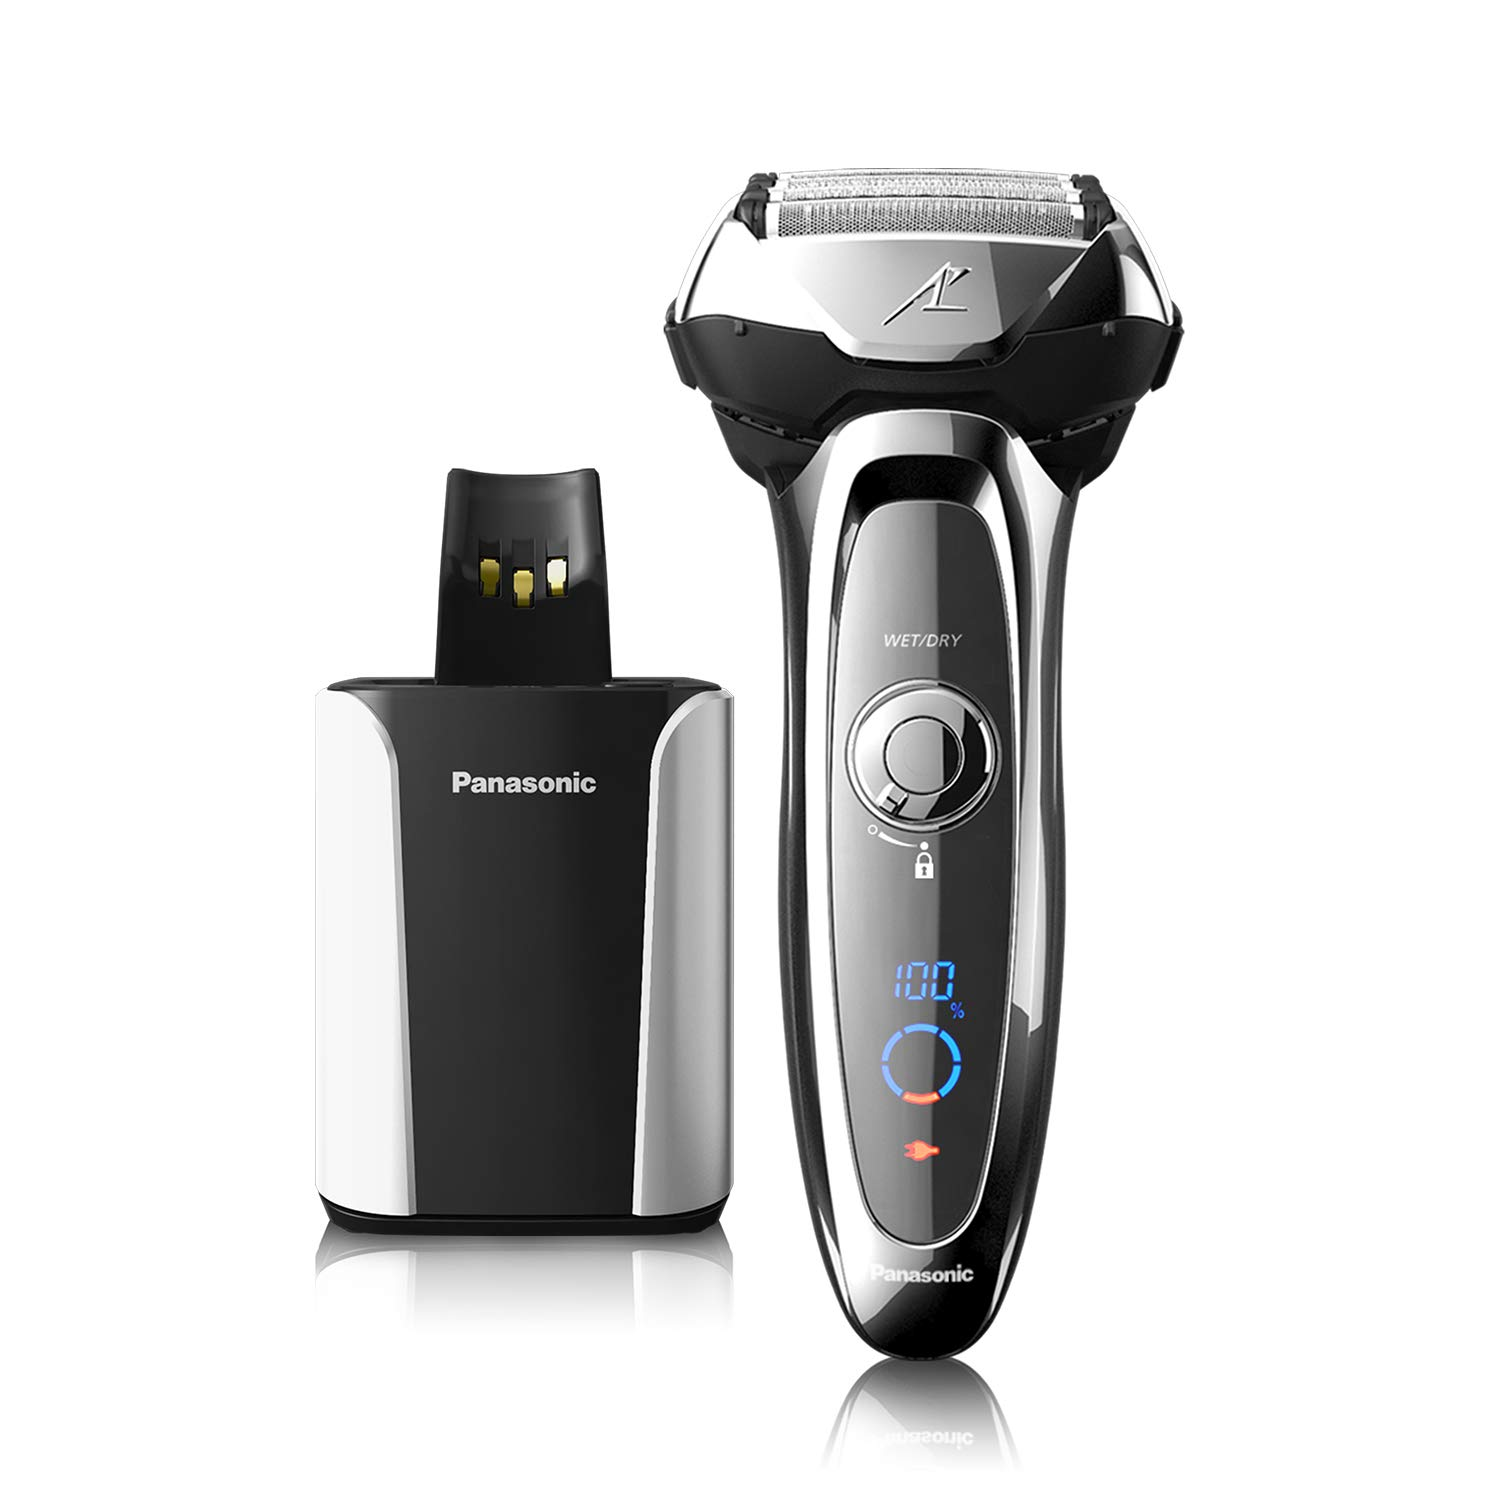 Panasonic ARC5 Electric Razor For Men, 5 Blades Shaver & Trimmer, Shave Senor Technology, Automatic Clean & Charge Station, Wet Dry - ES-LV95-S by Panasonic